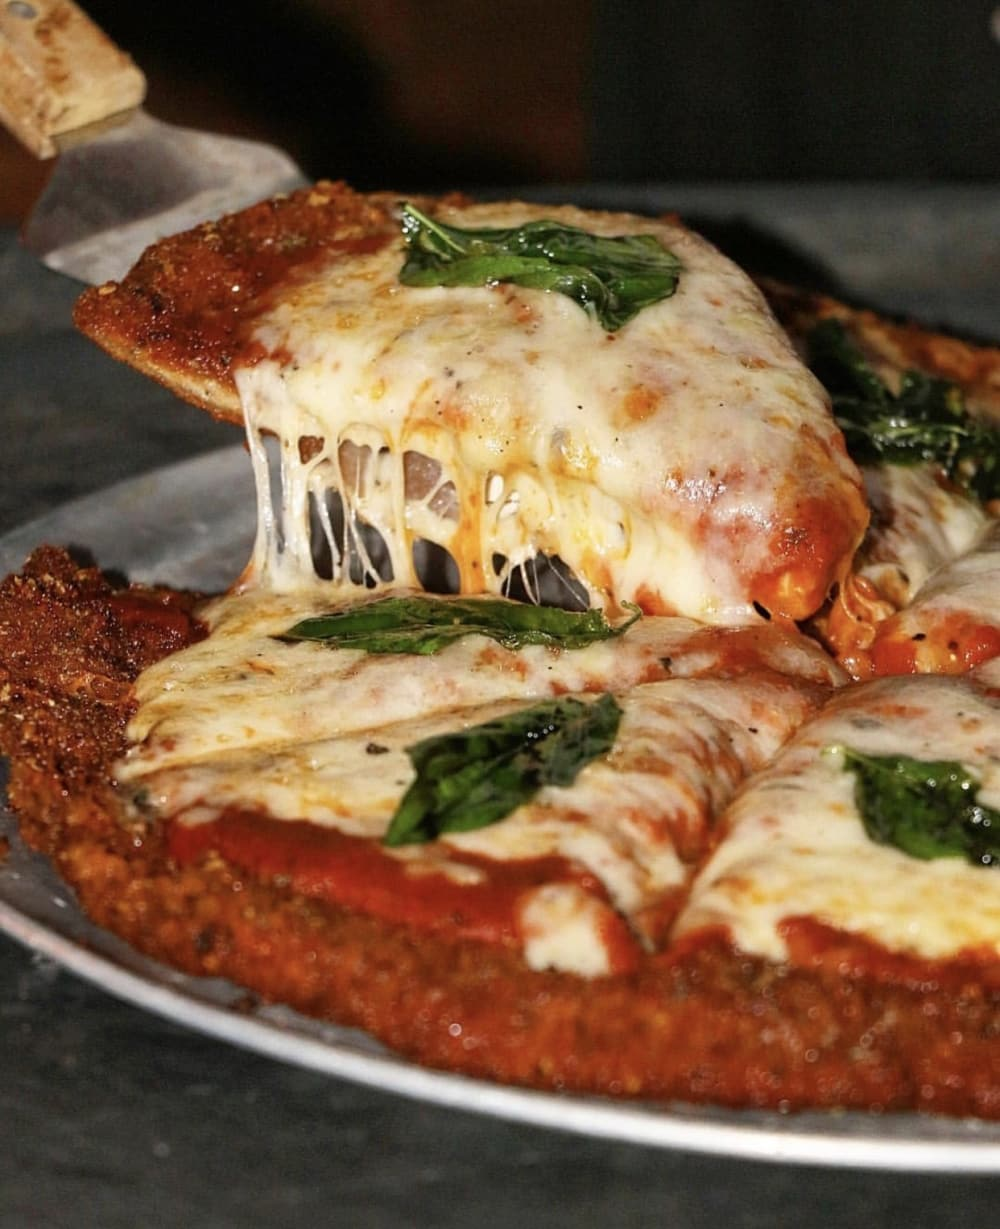 Chicken Parmesan Pizza from Quality Eats in New York City! Photo courtesy of @TheNaughtyFork